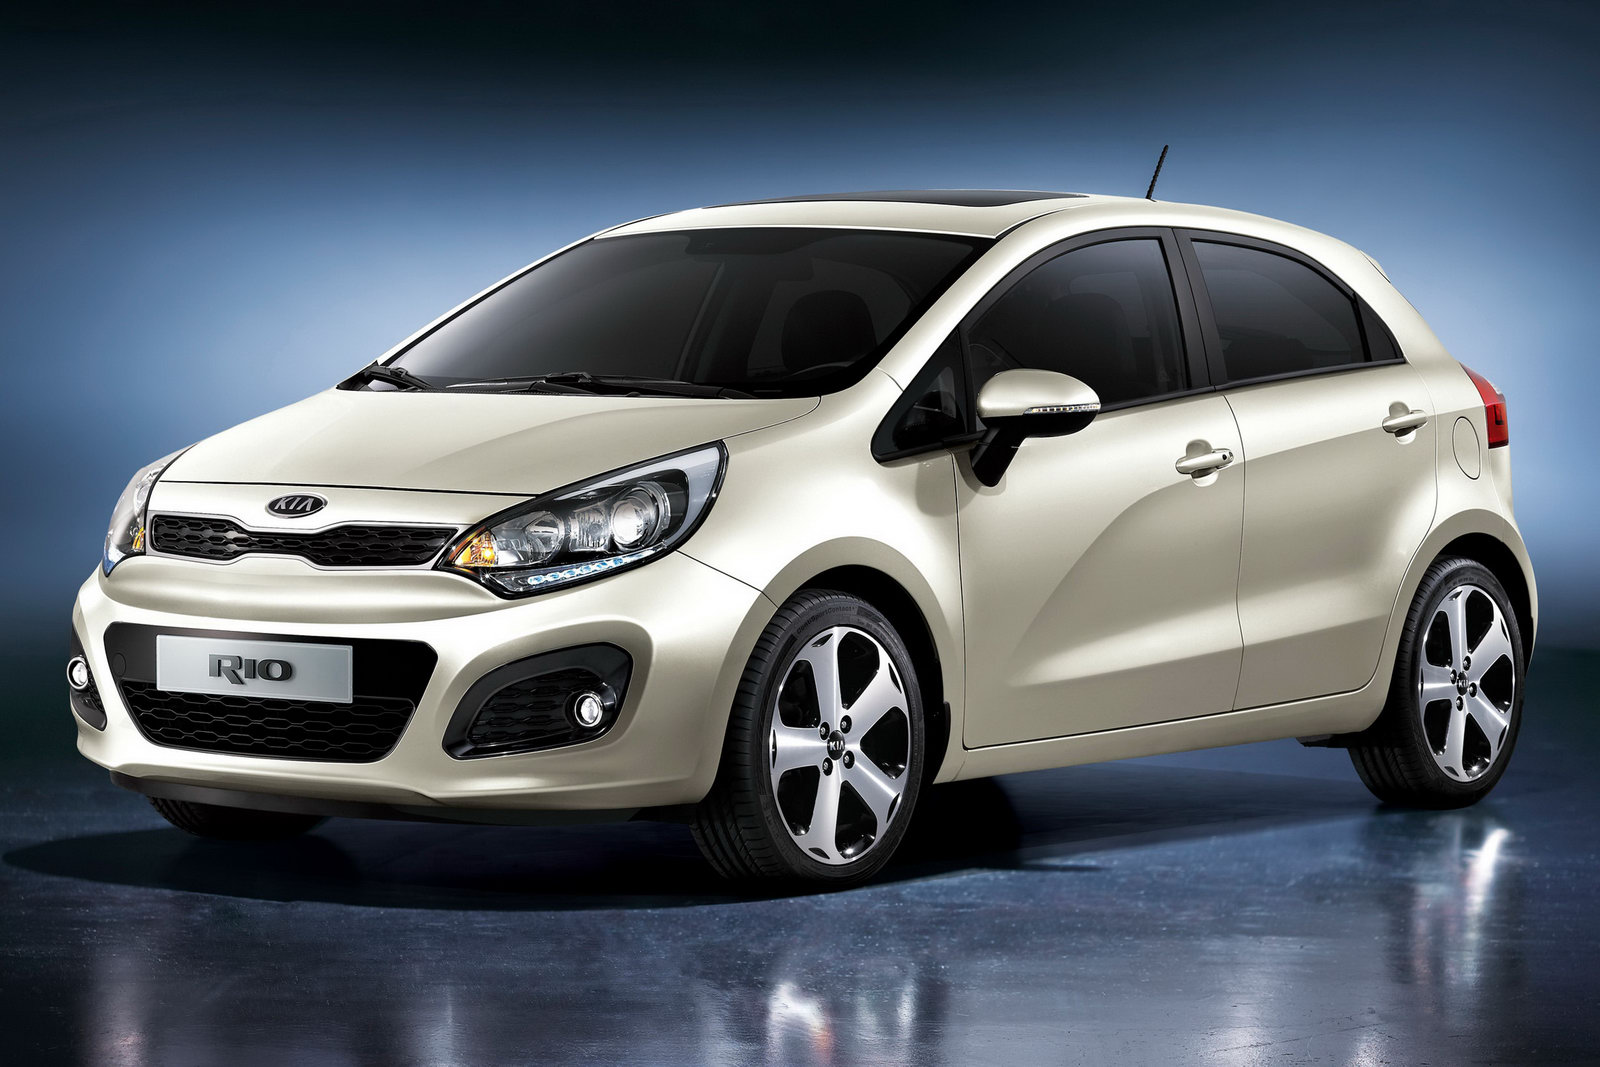 Kia Rio photo 01